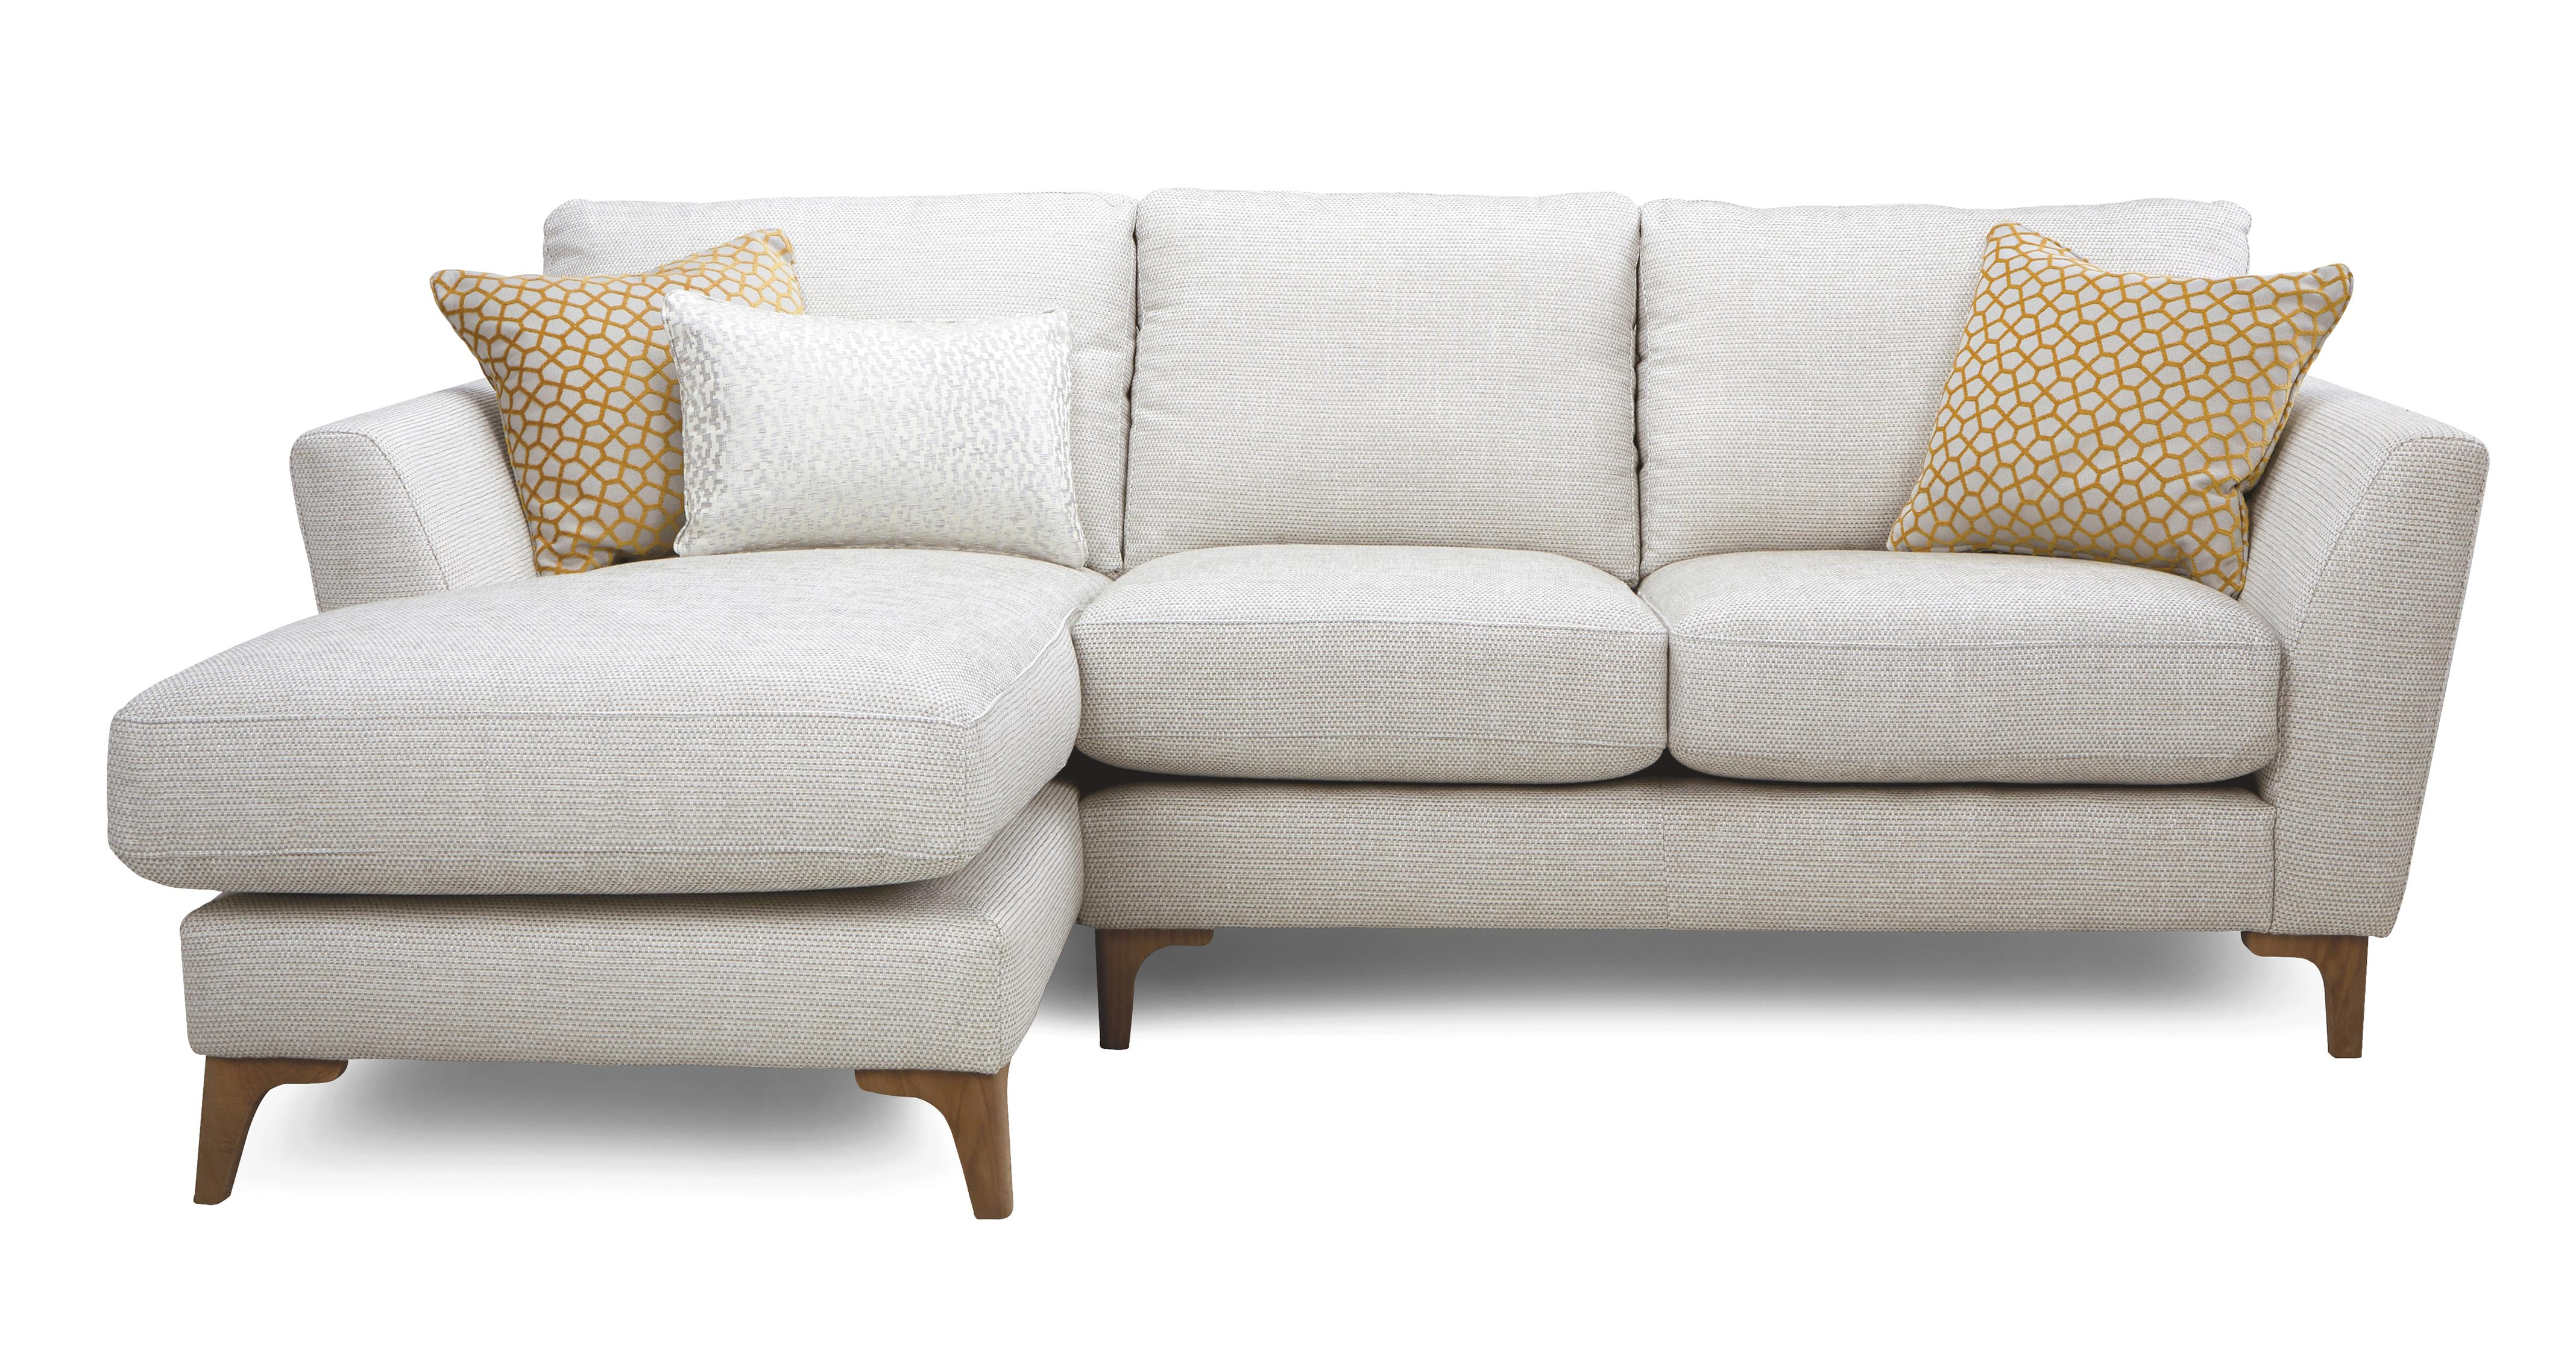 Libby Plain Left Hand Facing Chaise End 2 Seater Sofa Dfs